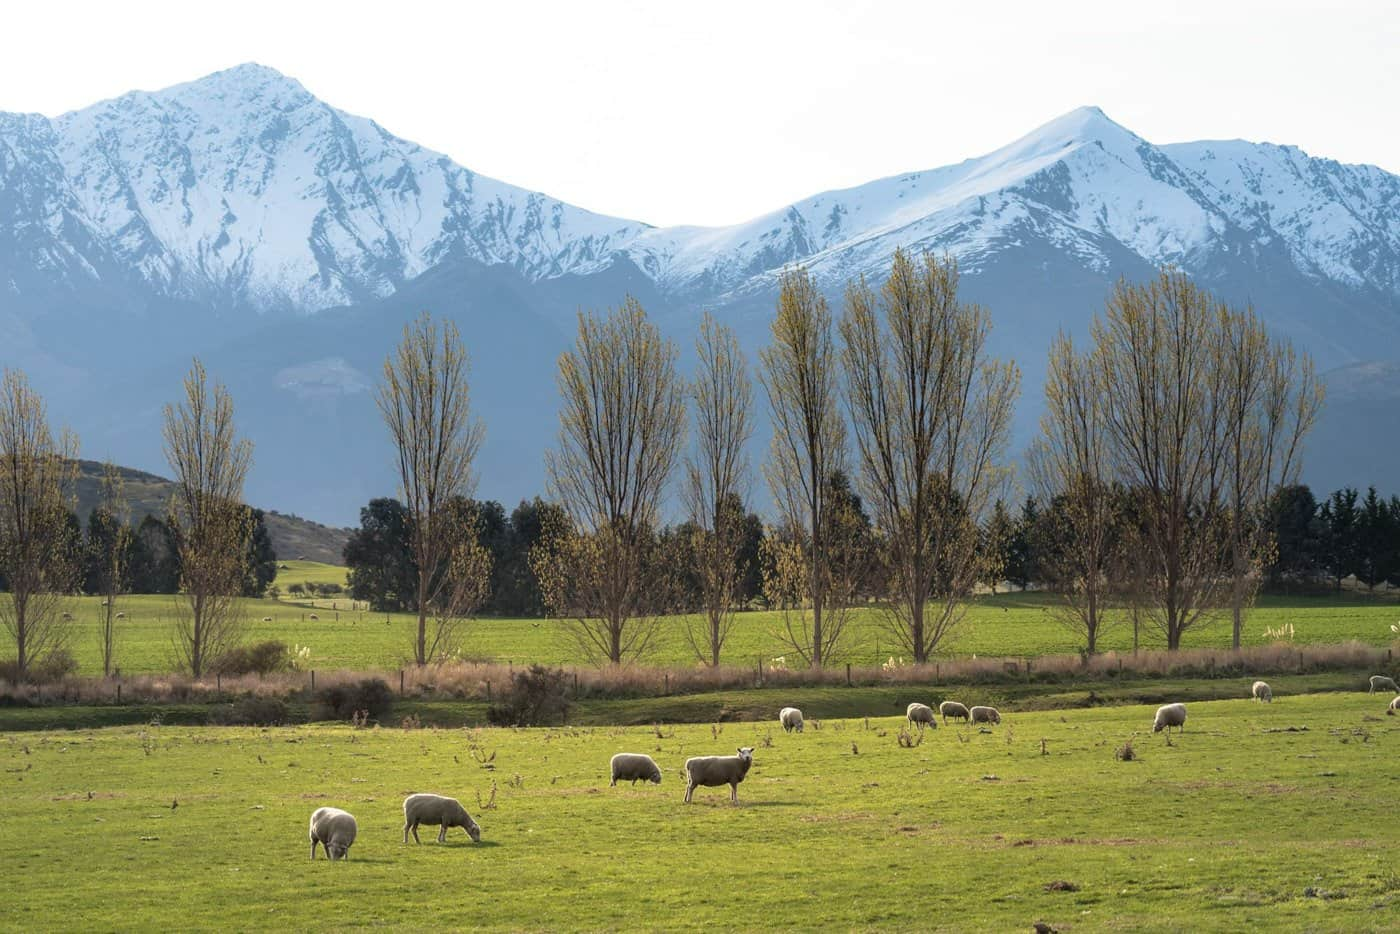 The Key is a region of beautiful, charming South Island countryside between Queenstown and Milford Sound.